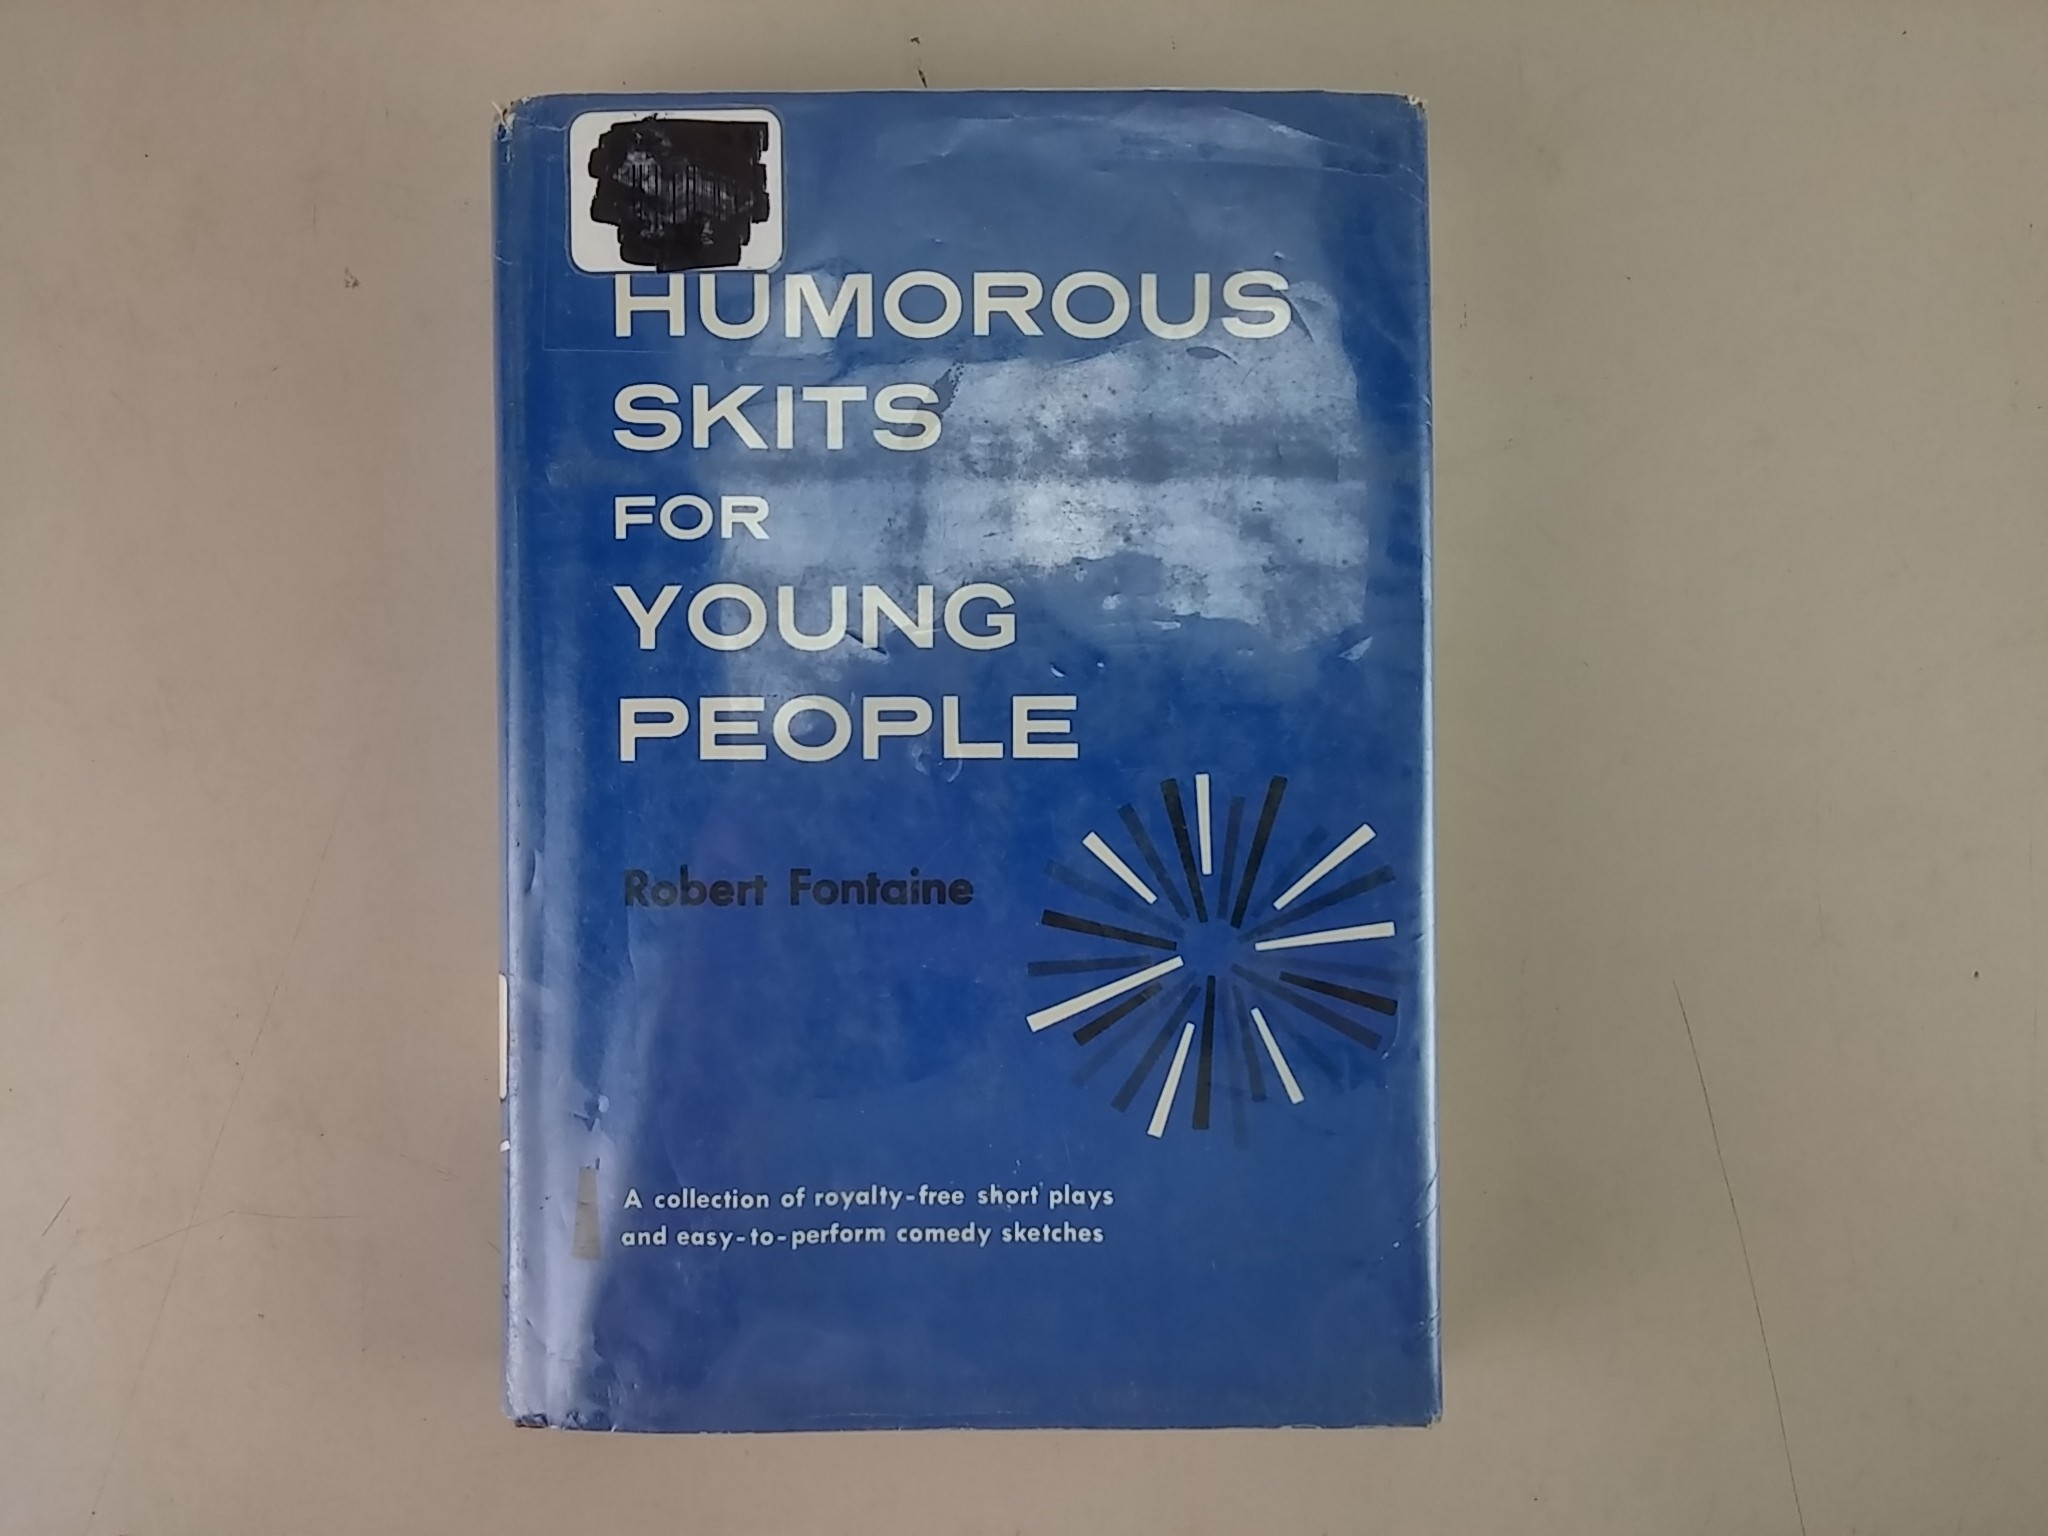 Humorous Skits for Young People